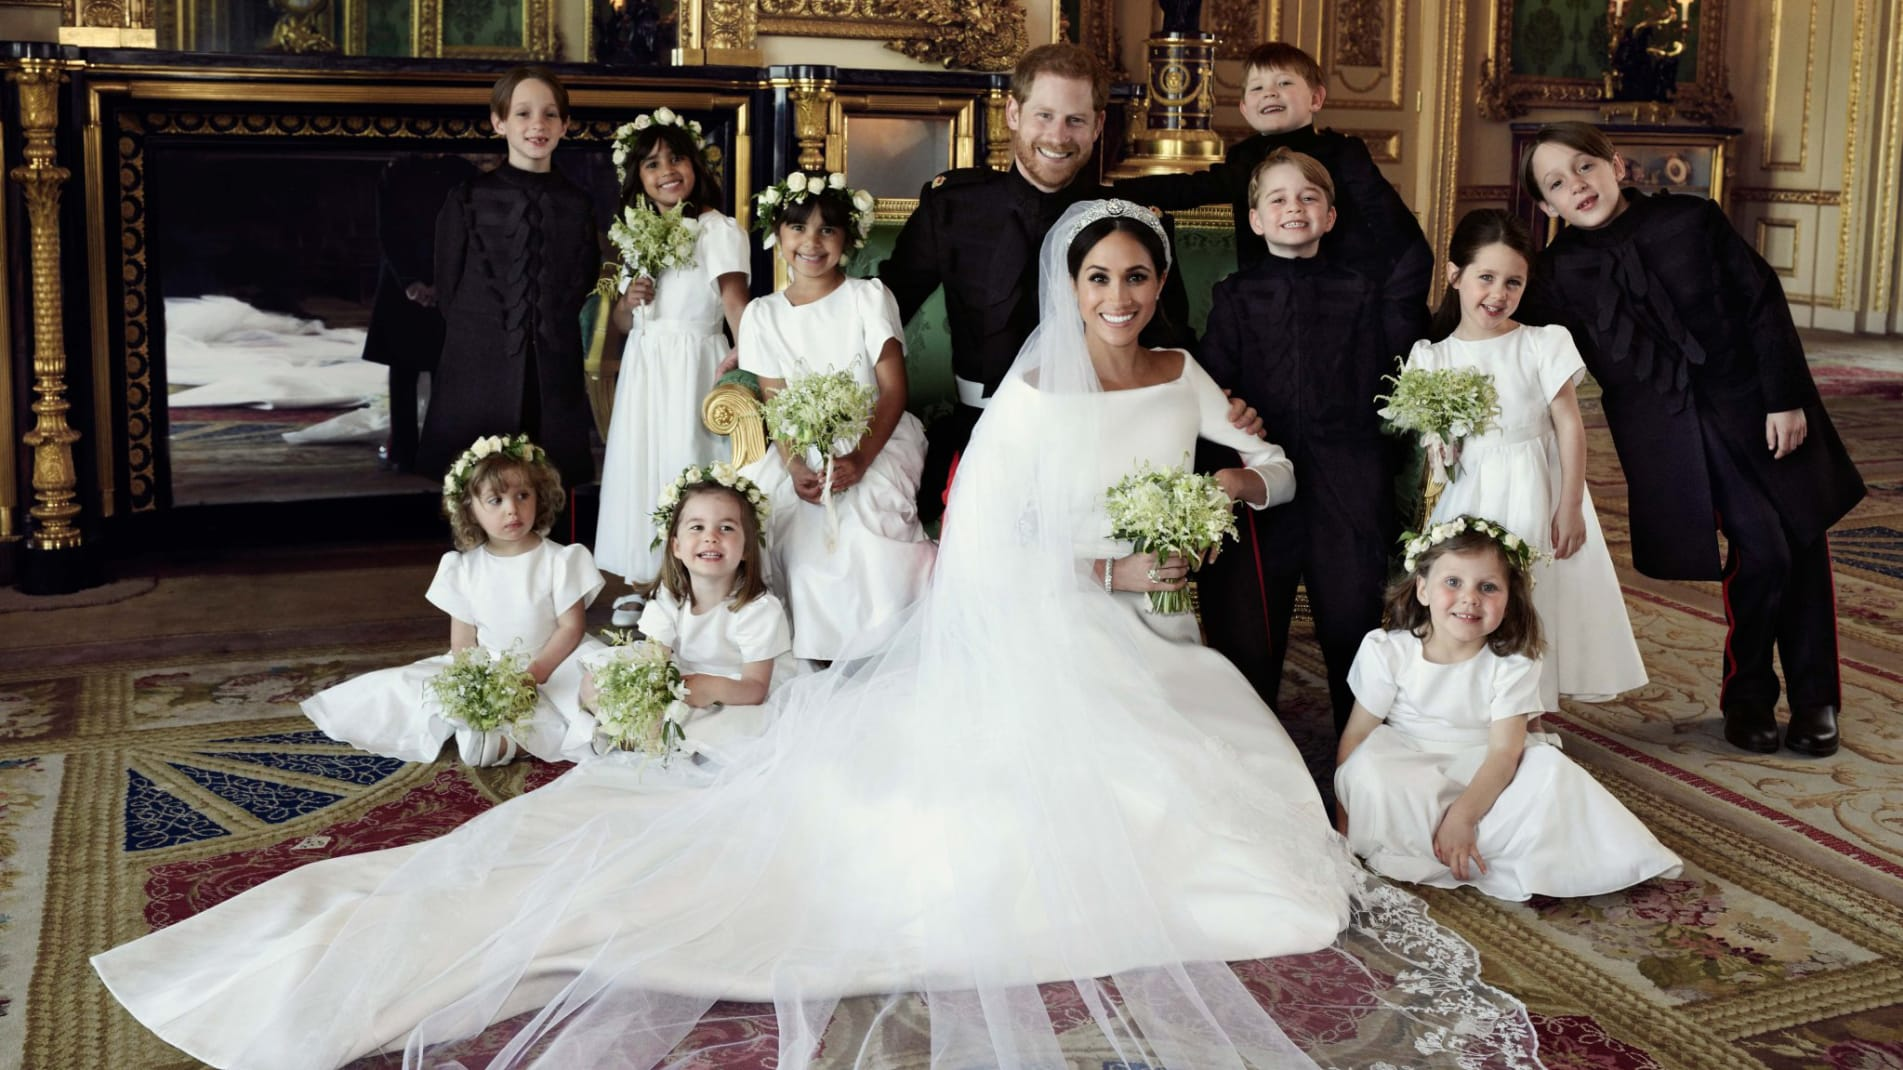 02 royal wedding official portraits